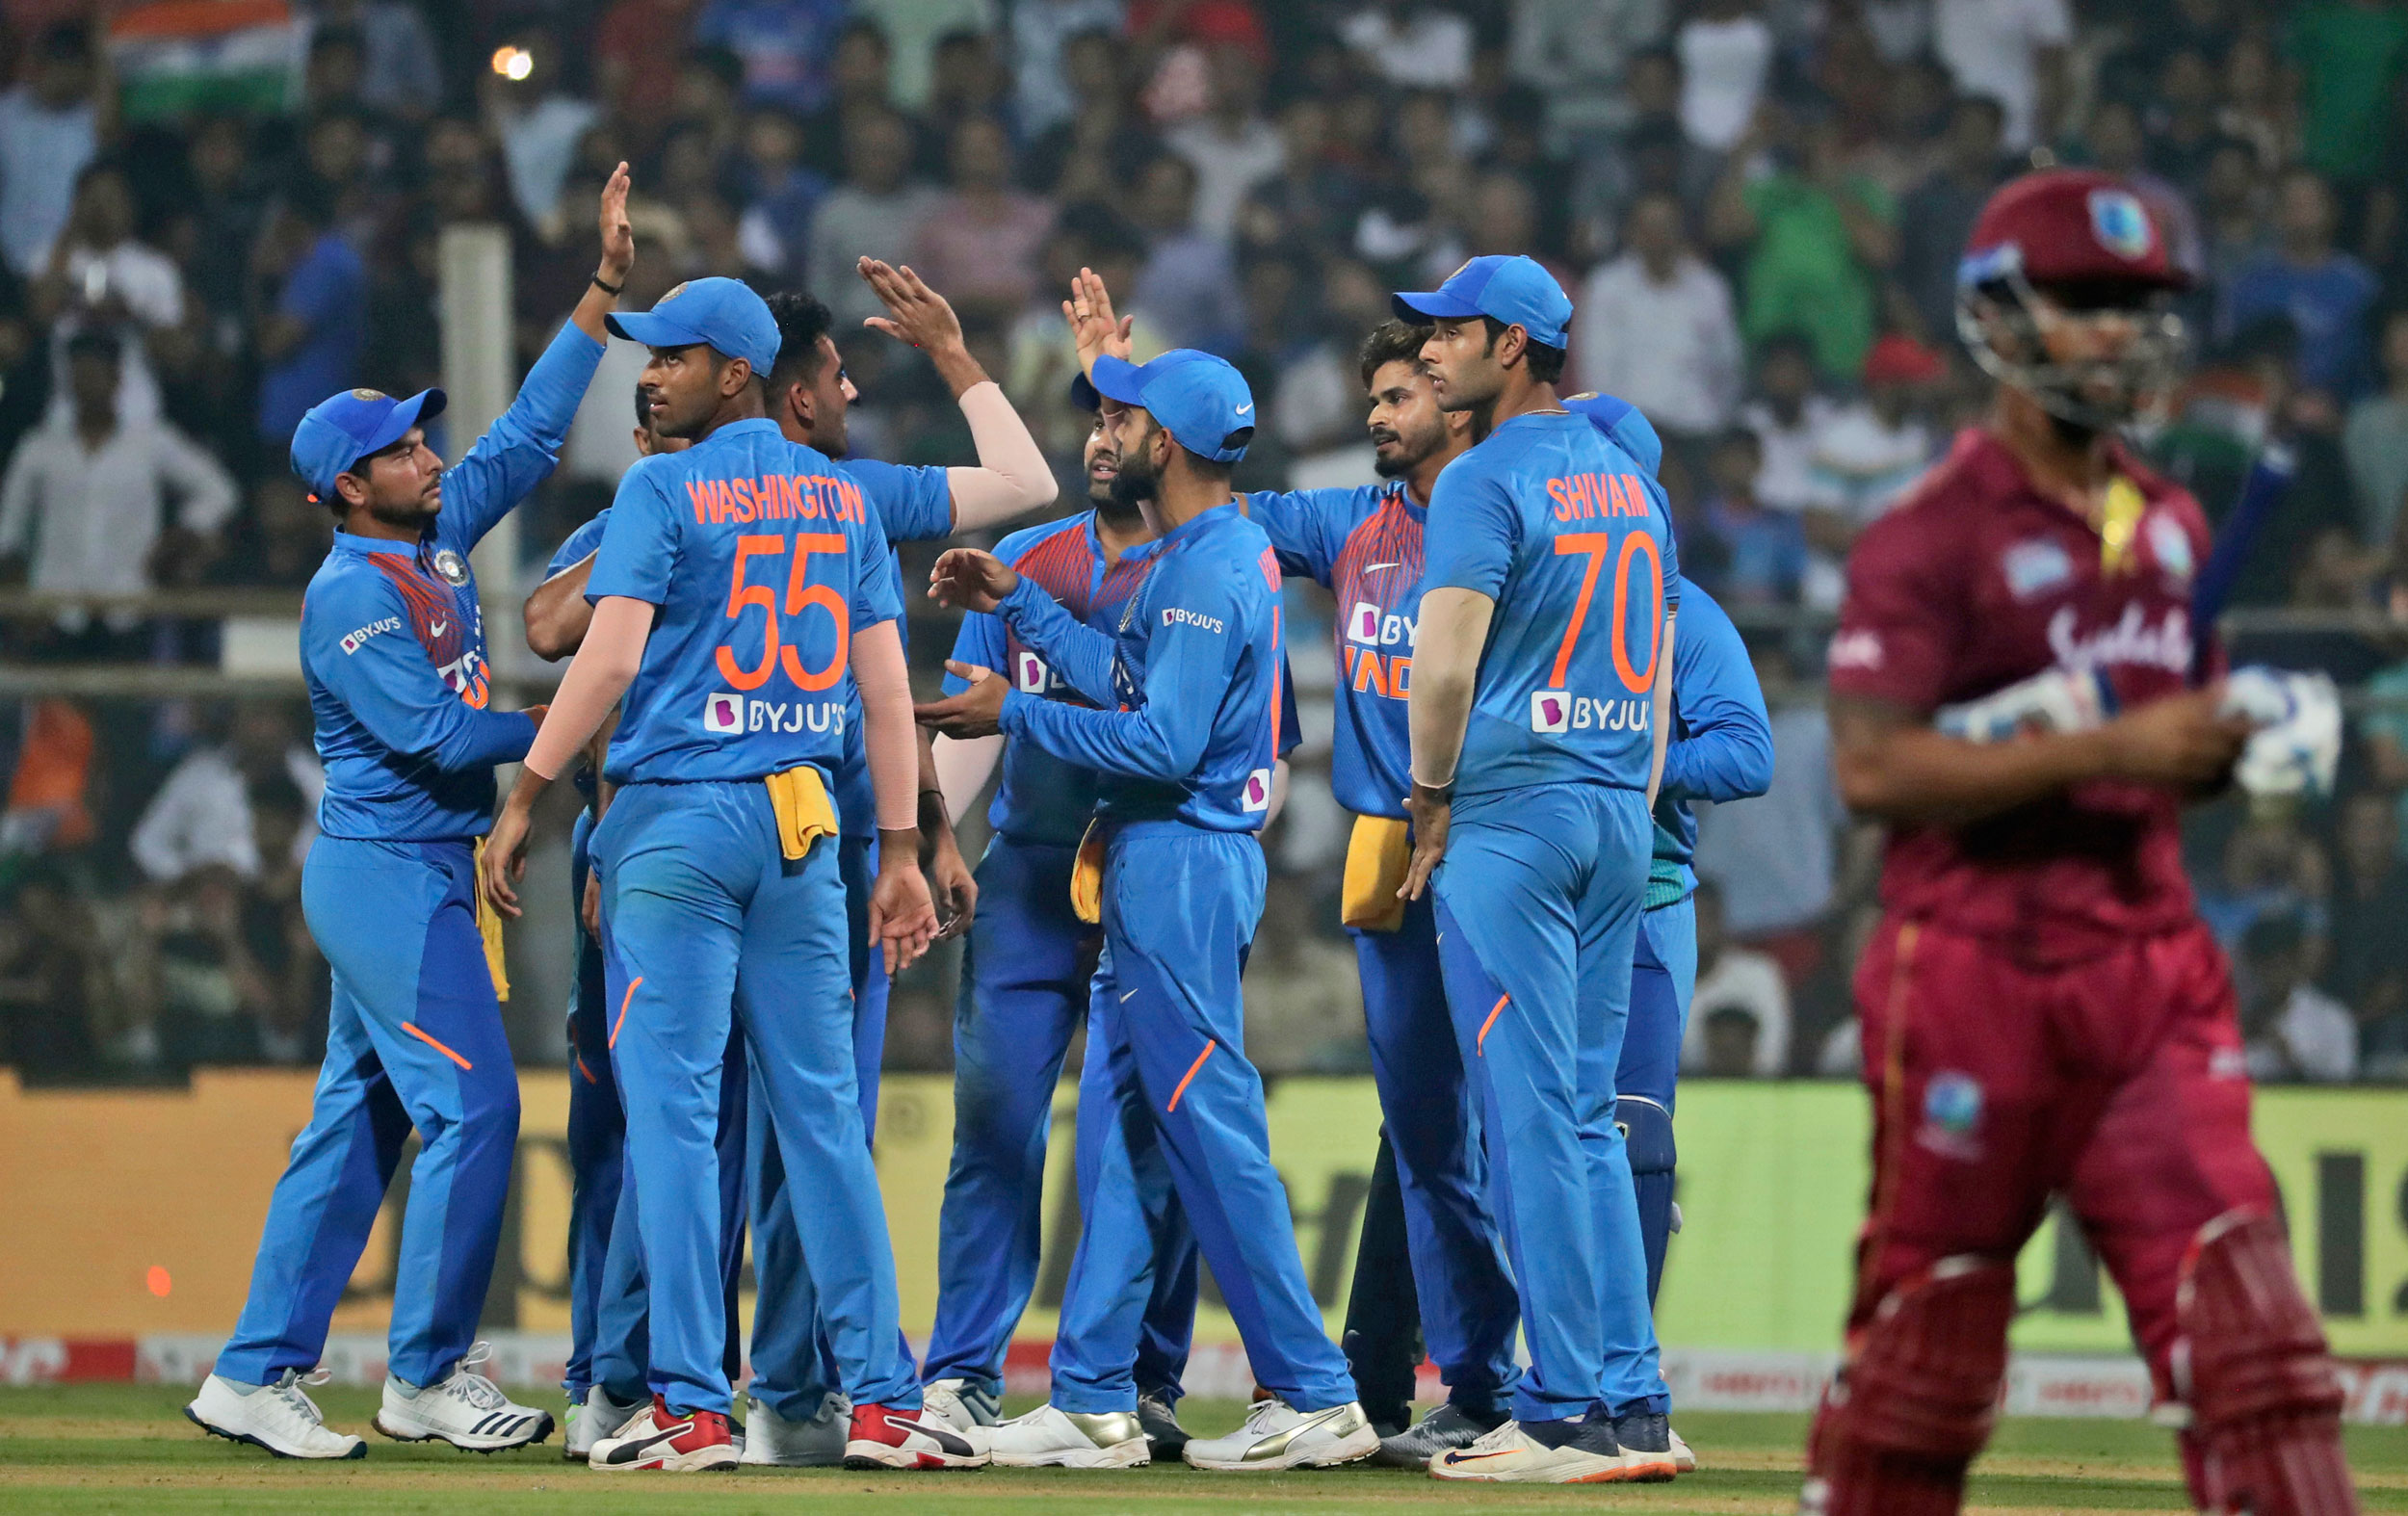 Indian cricketers celebrate the dismissal of Lendl Simmons during the third Twenty20 international cricket match between India and West Indies in Mumbai on Wednesday.